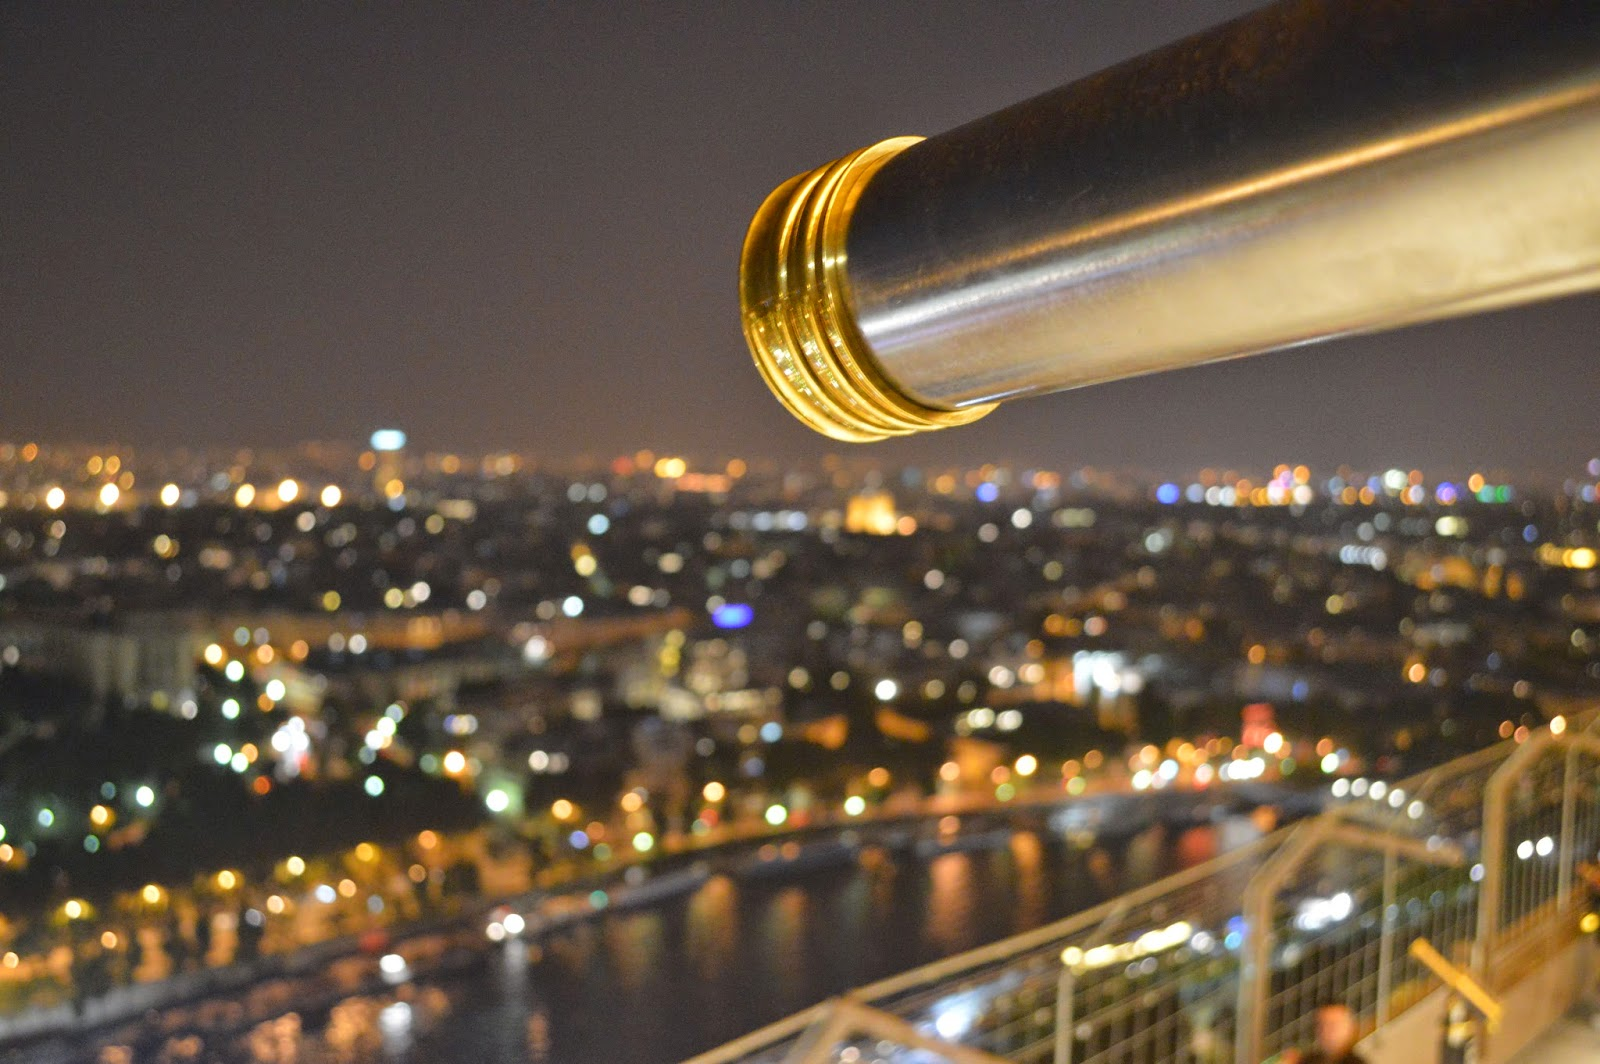 A view from the top of the Eiffel Tower at night